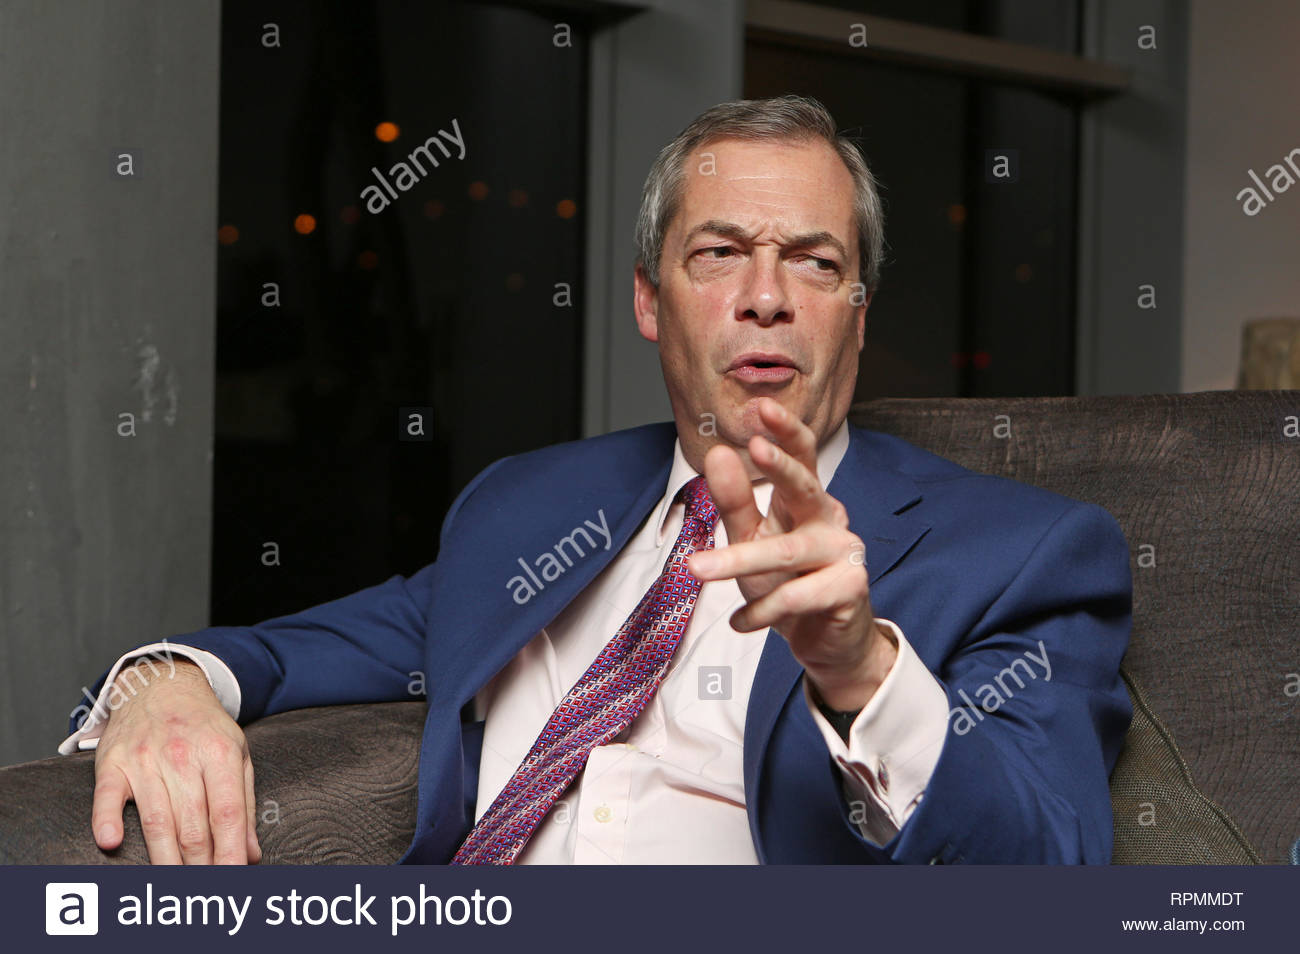 UKIP leader Nigel Farage interviewed during the EU referendum campaign. - Stock Image